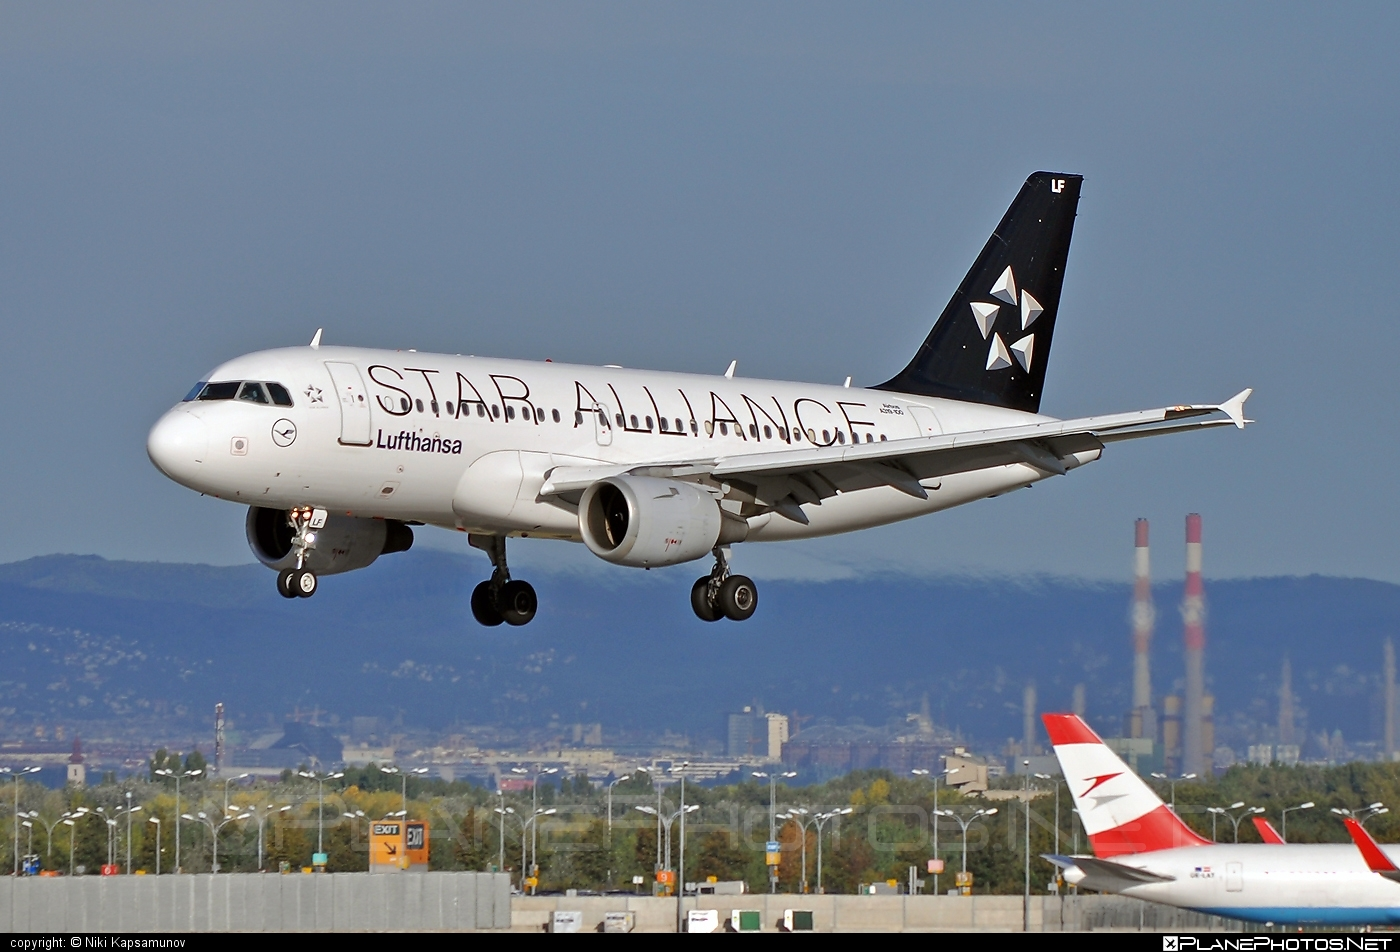 Airbus A319-114 - D-AILF operated by Lufthansa #a319 #a320family #airbus #airbus319 #lufthansa #staralliance